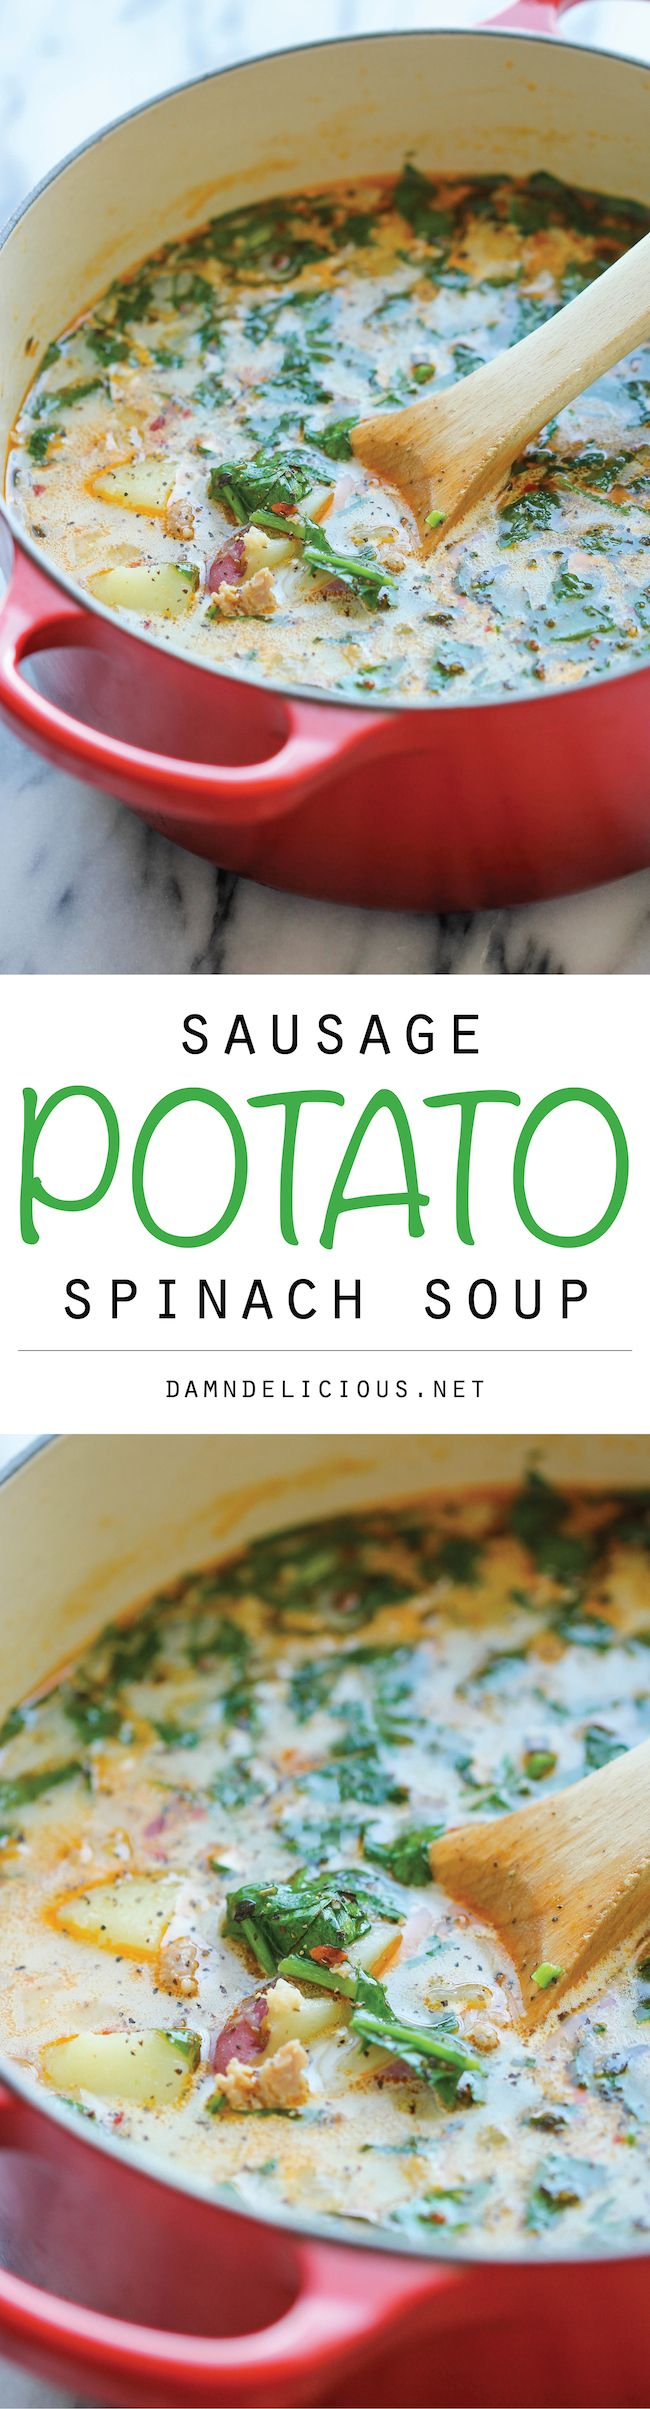 Sausage, Potato and Spinach Soup: maybe use ground beef or turkey instead of sausage